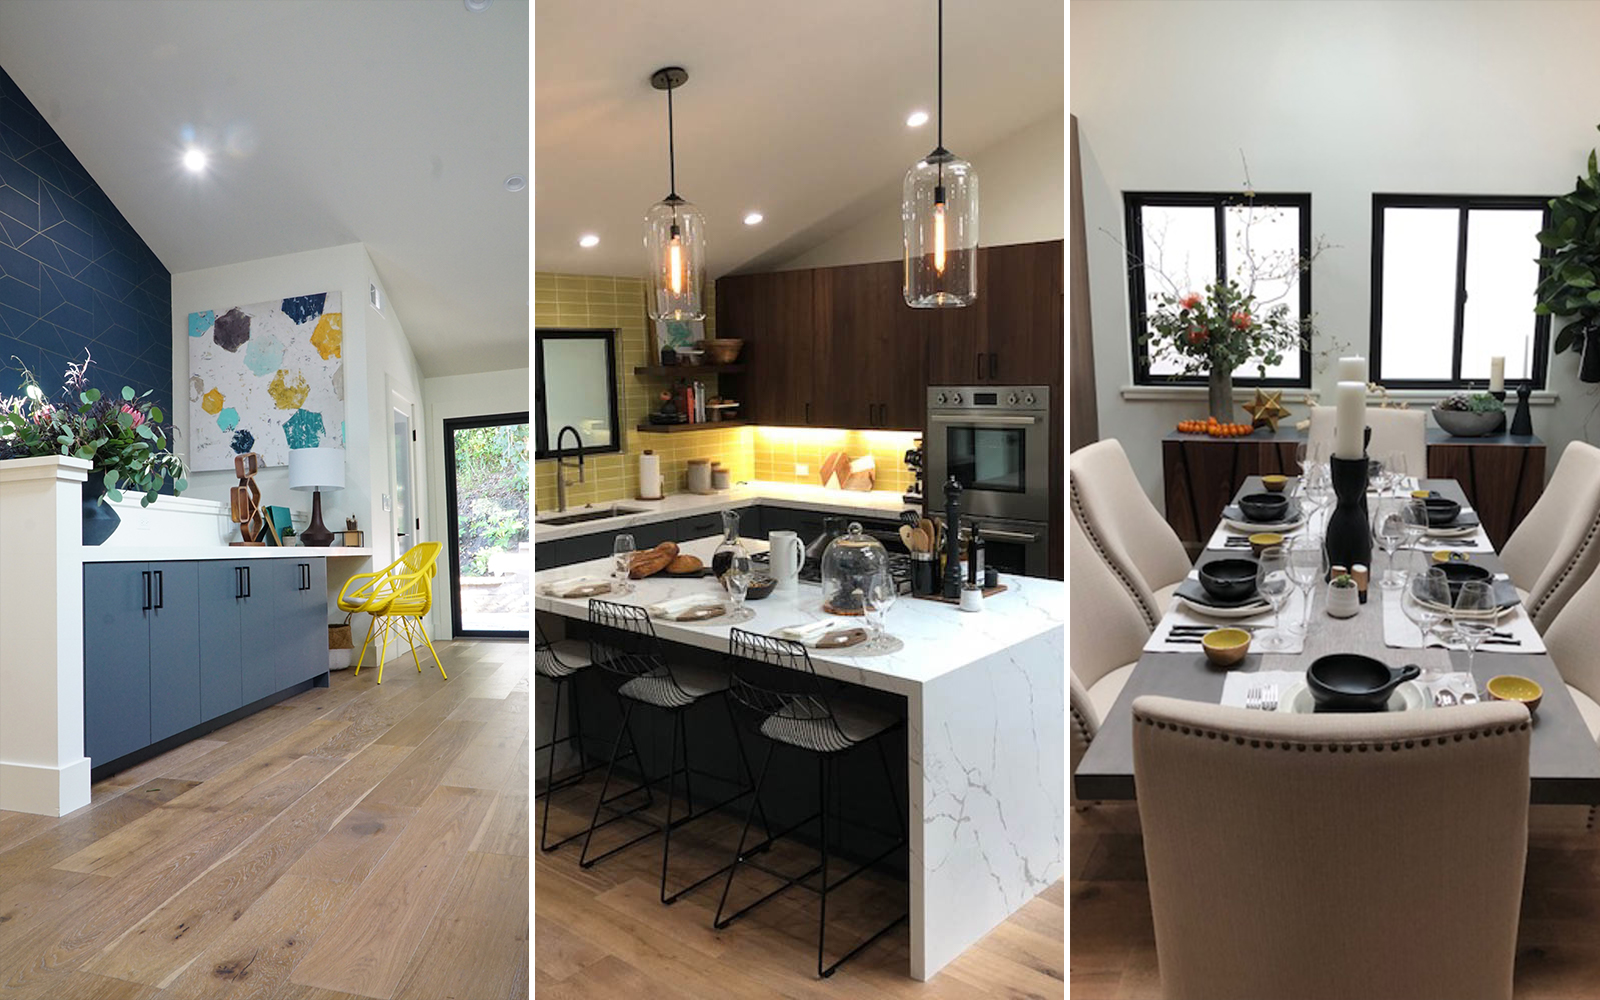 A styled kitchen and dining area for season 6 of Brother vs Brother.